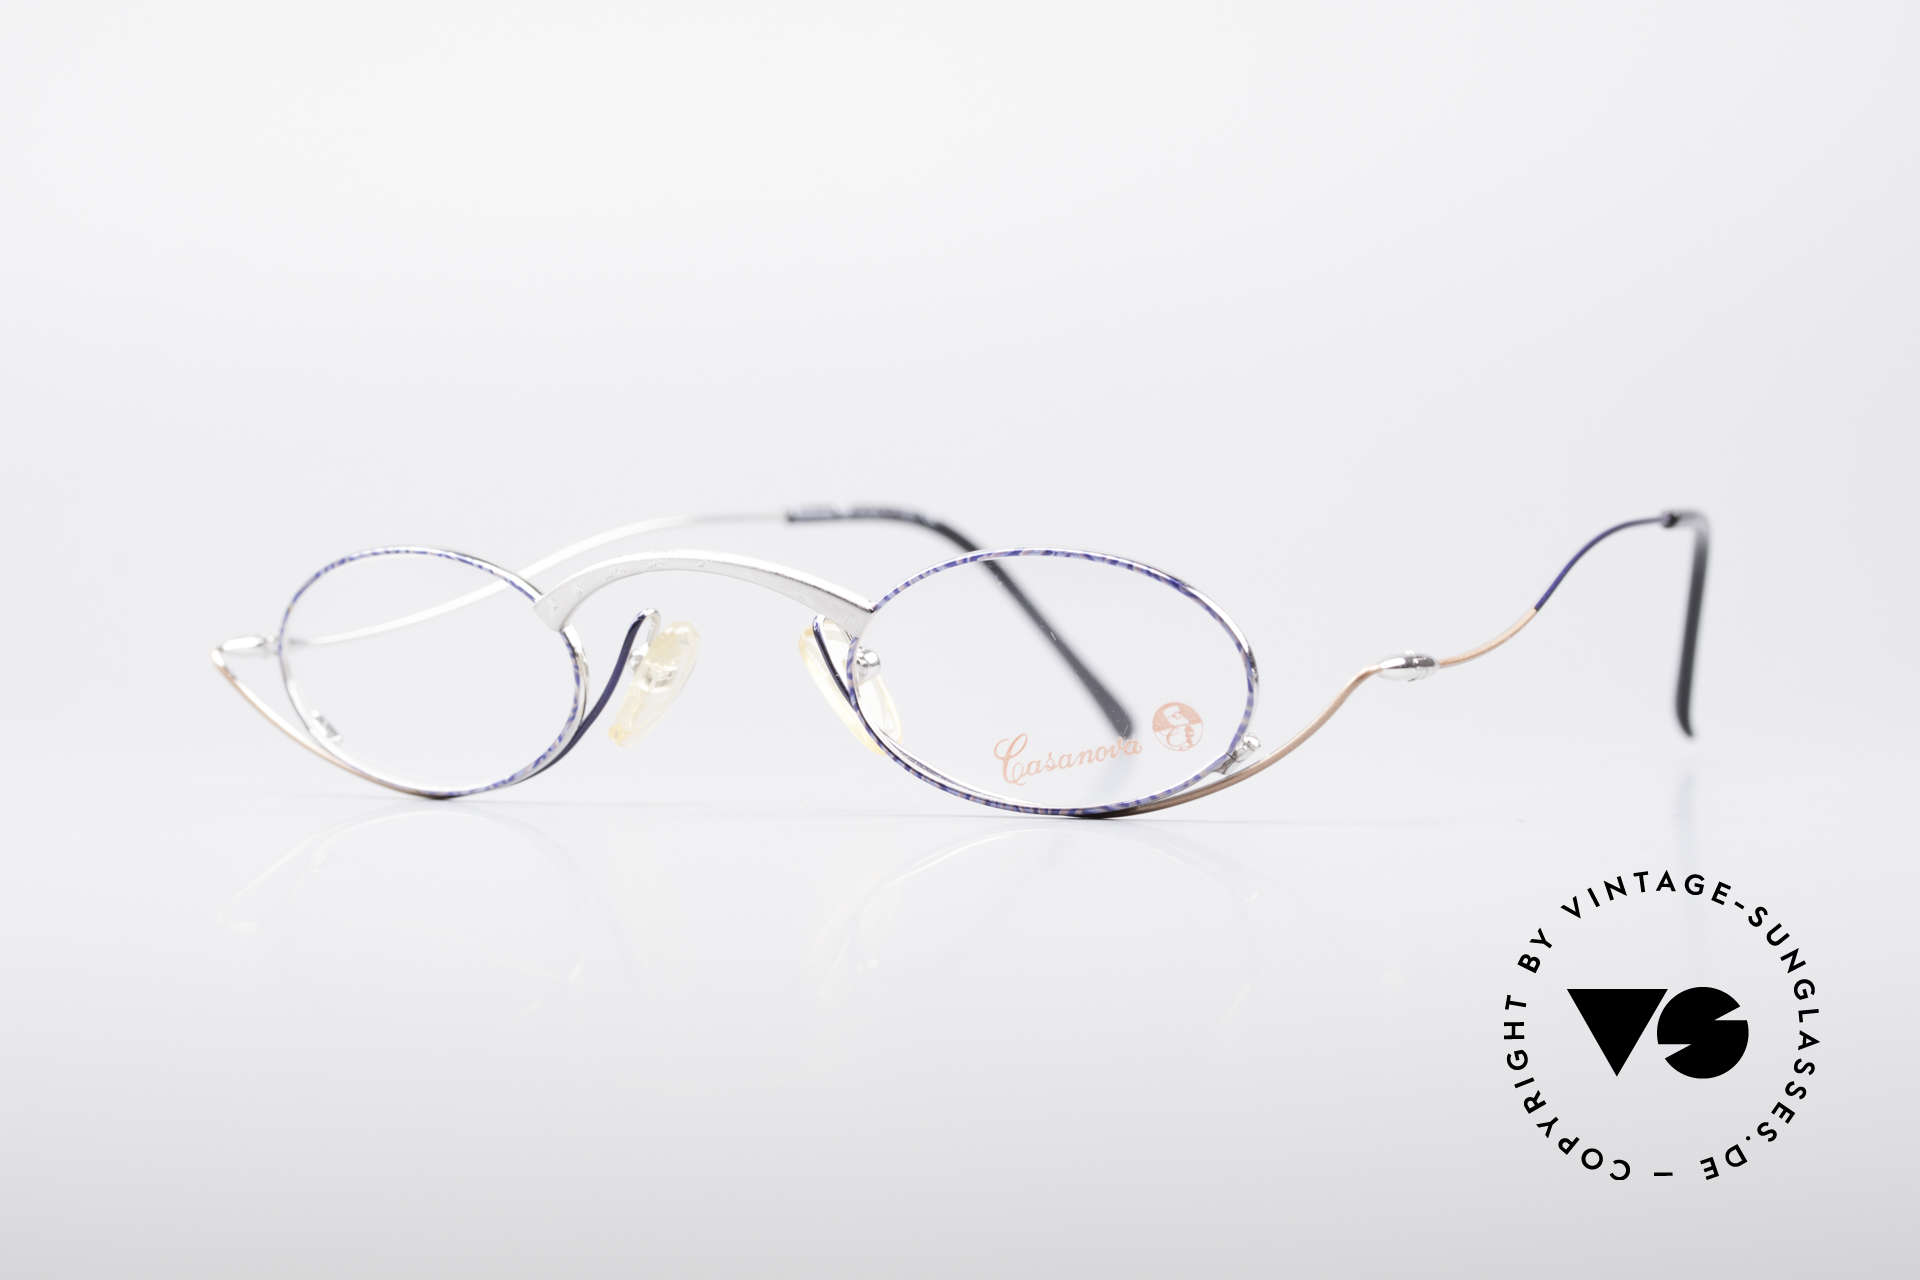 Casanova LC44 Artistic Reading Glasses, top-notch craftsmanship & very subtle frame pattern, Made for Men and Women